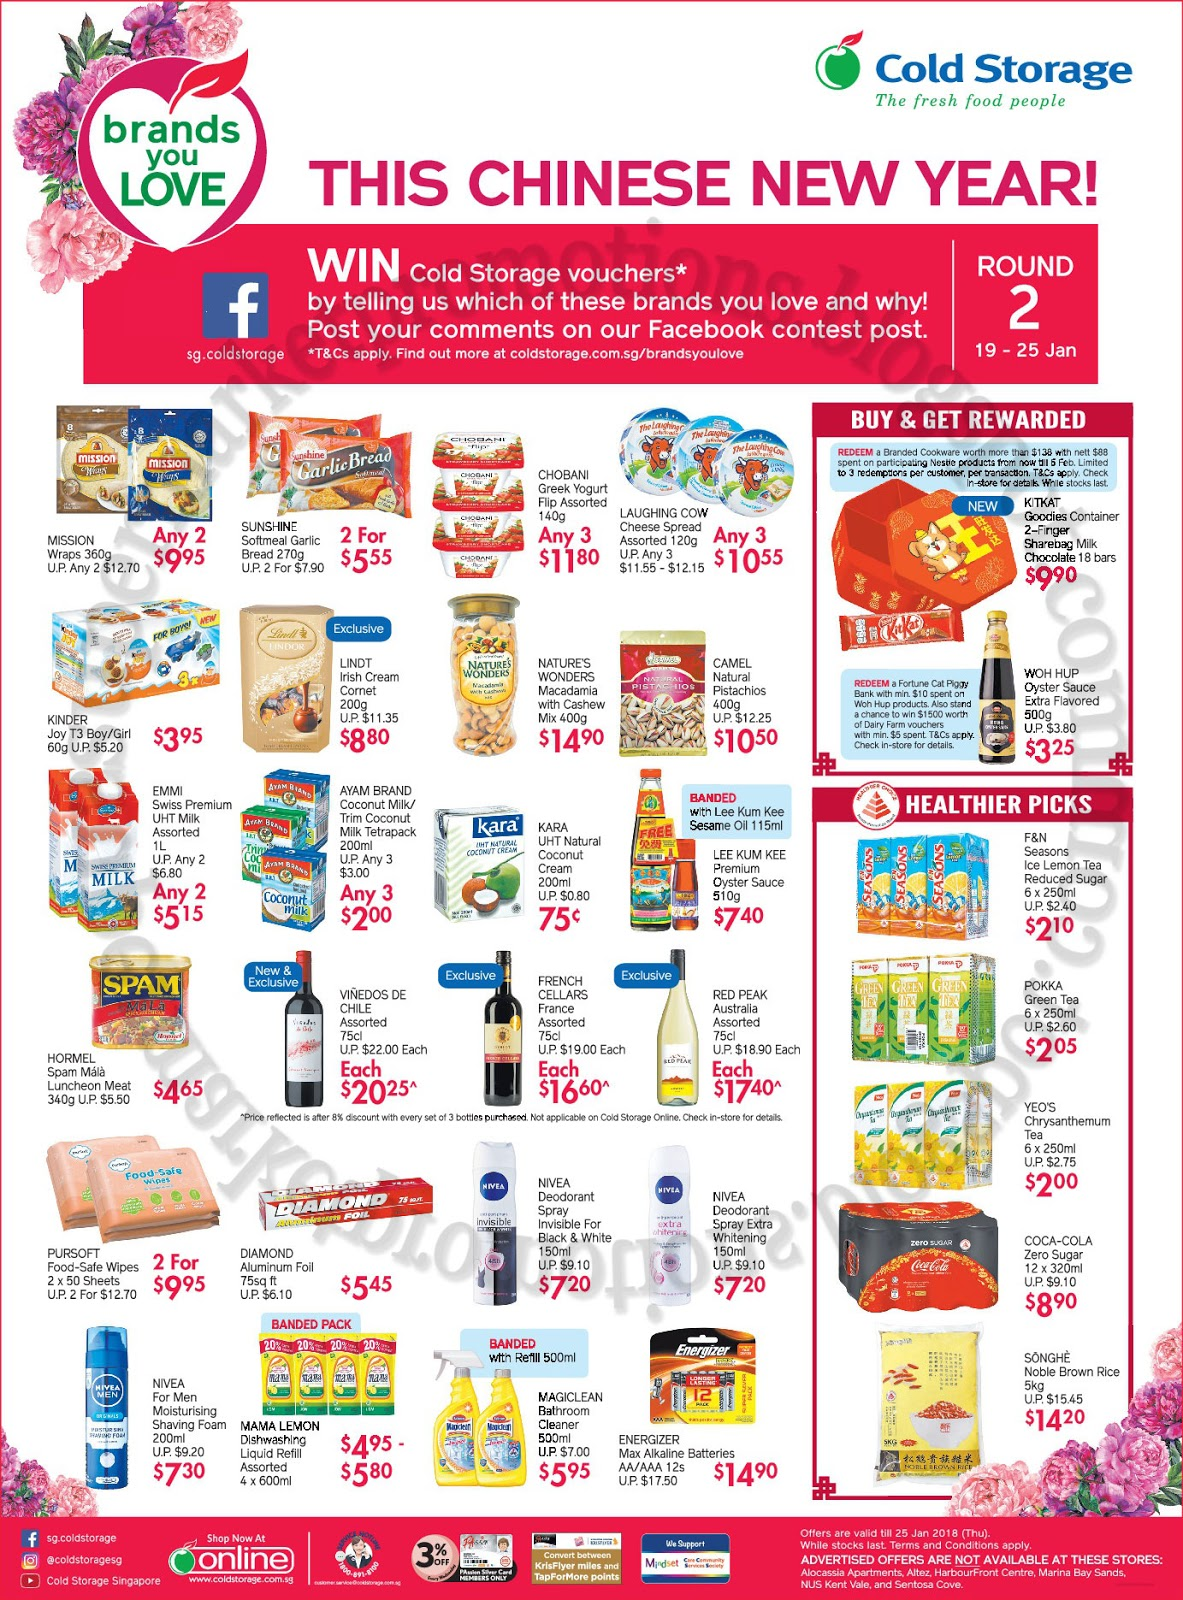 Redeem a fortune cat piggy bank with min $10 spent on Woh Hup products. Also stand a chance to win $1500 worth of Dairy Farm vouchers wint min $5 spent Tu0026C ...  sc 1 st  Supermarket Promotions & Cold Storage Chinese New Year Promotion 19 - 25 January 2018 ...